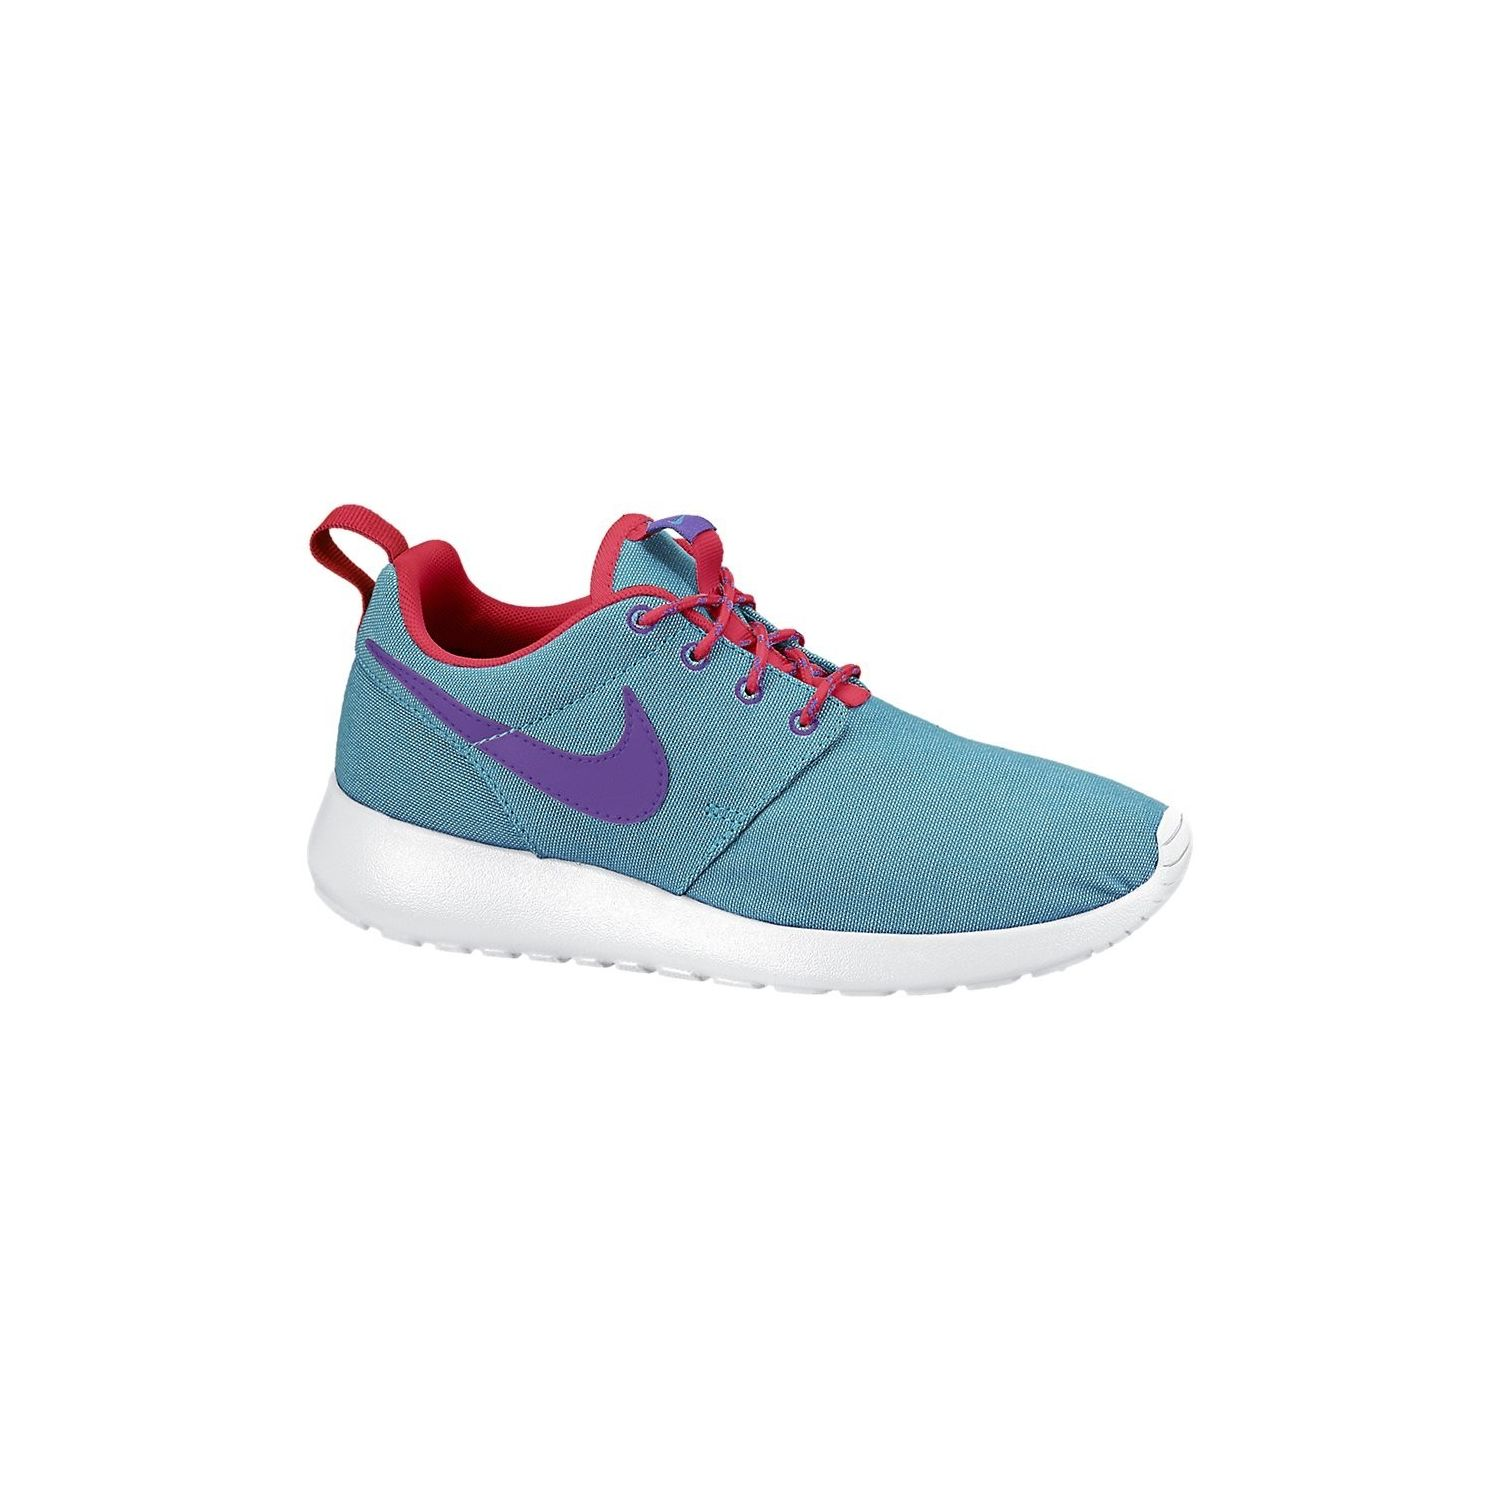 NIKE- Basket Roshe Run Junior - Ref. 599729-301